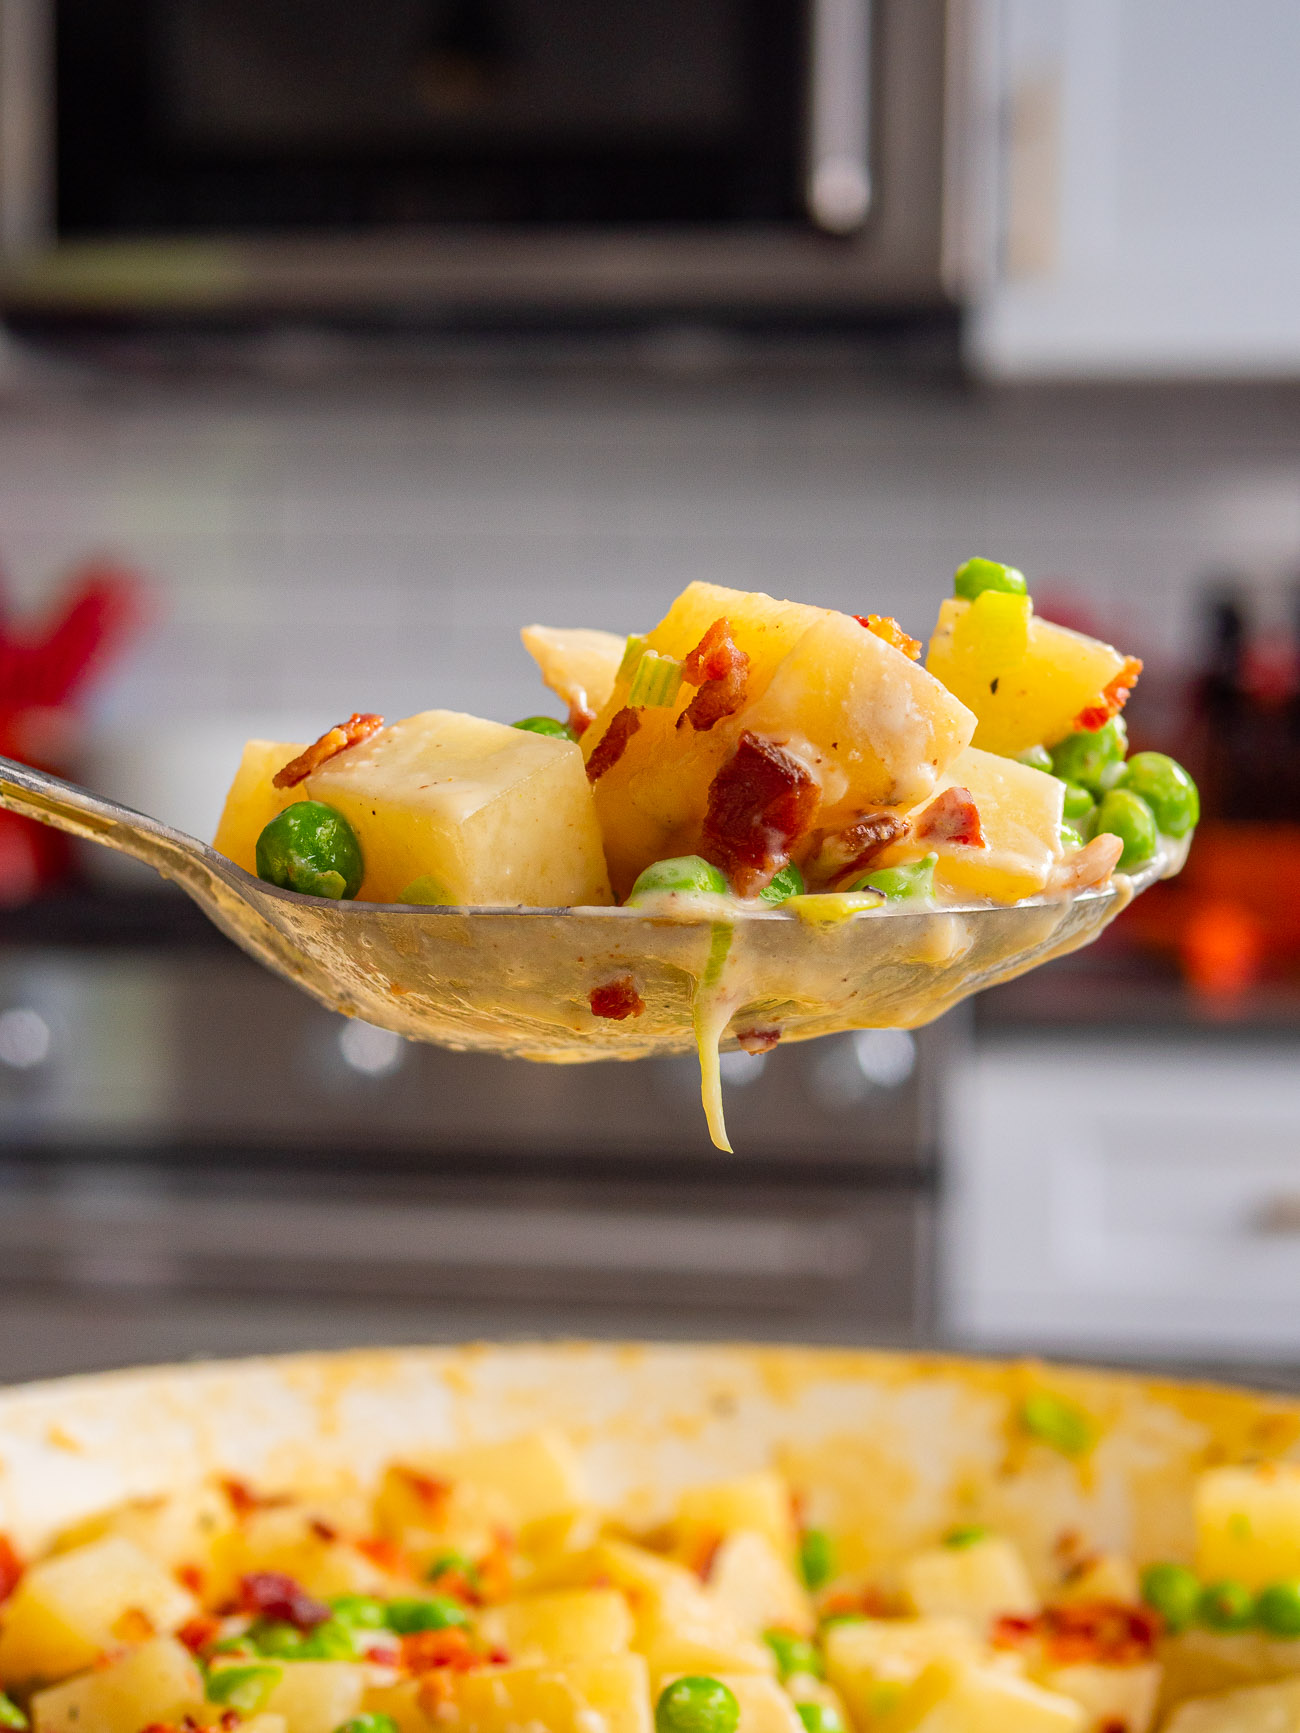 Spoonful of creamed peas and potatoes